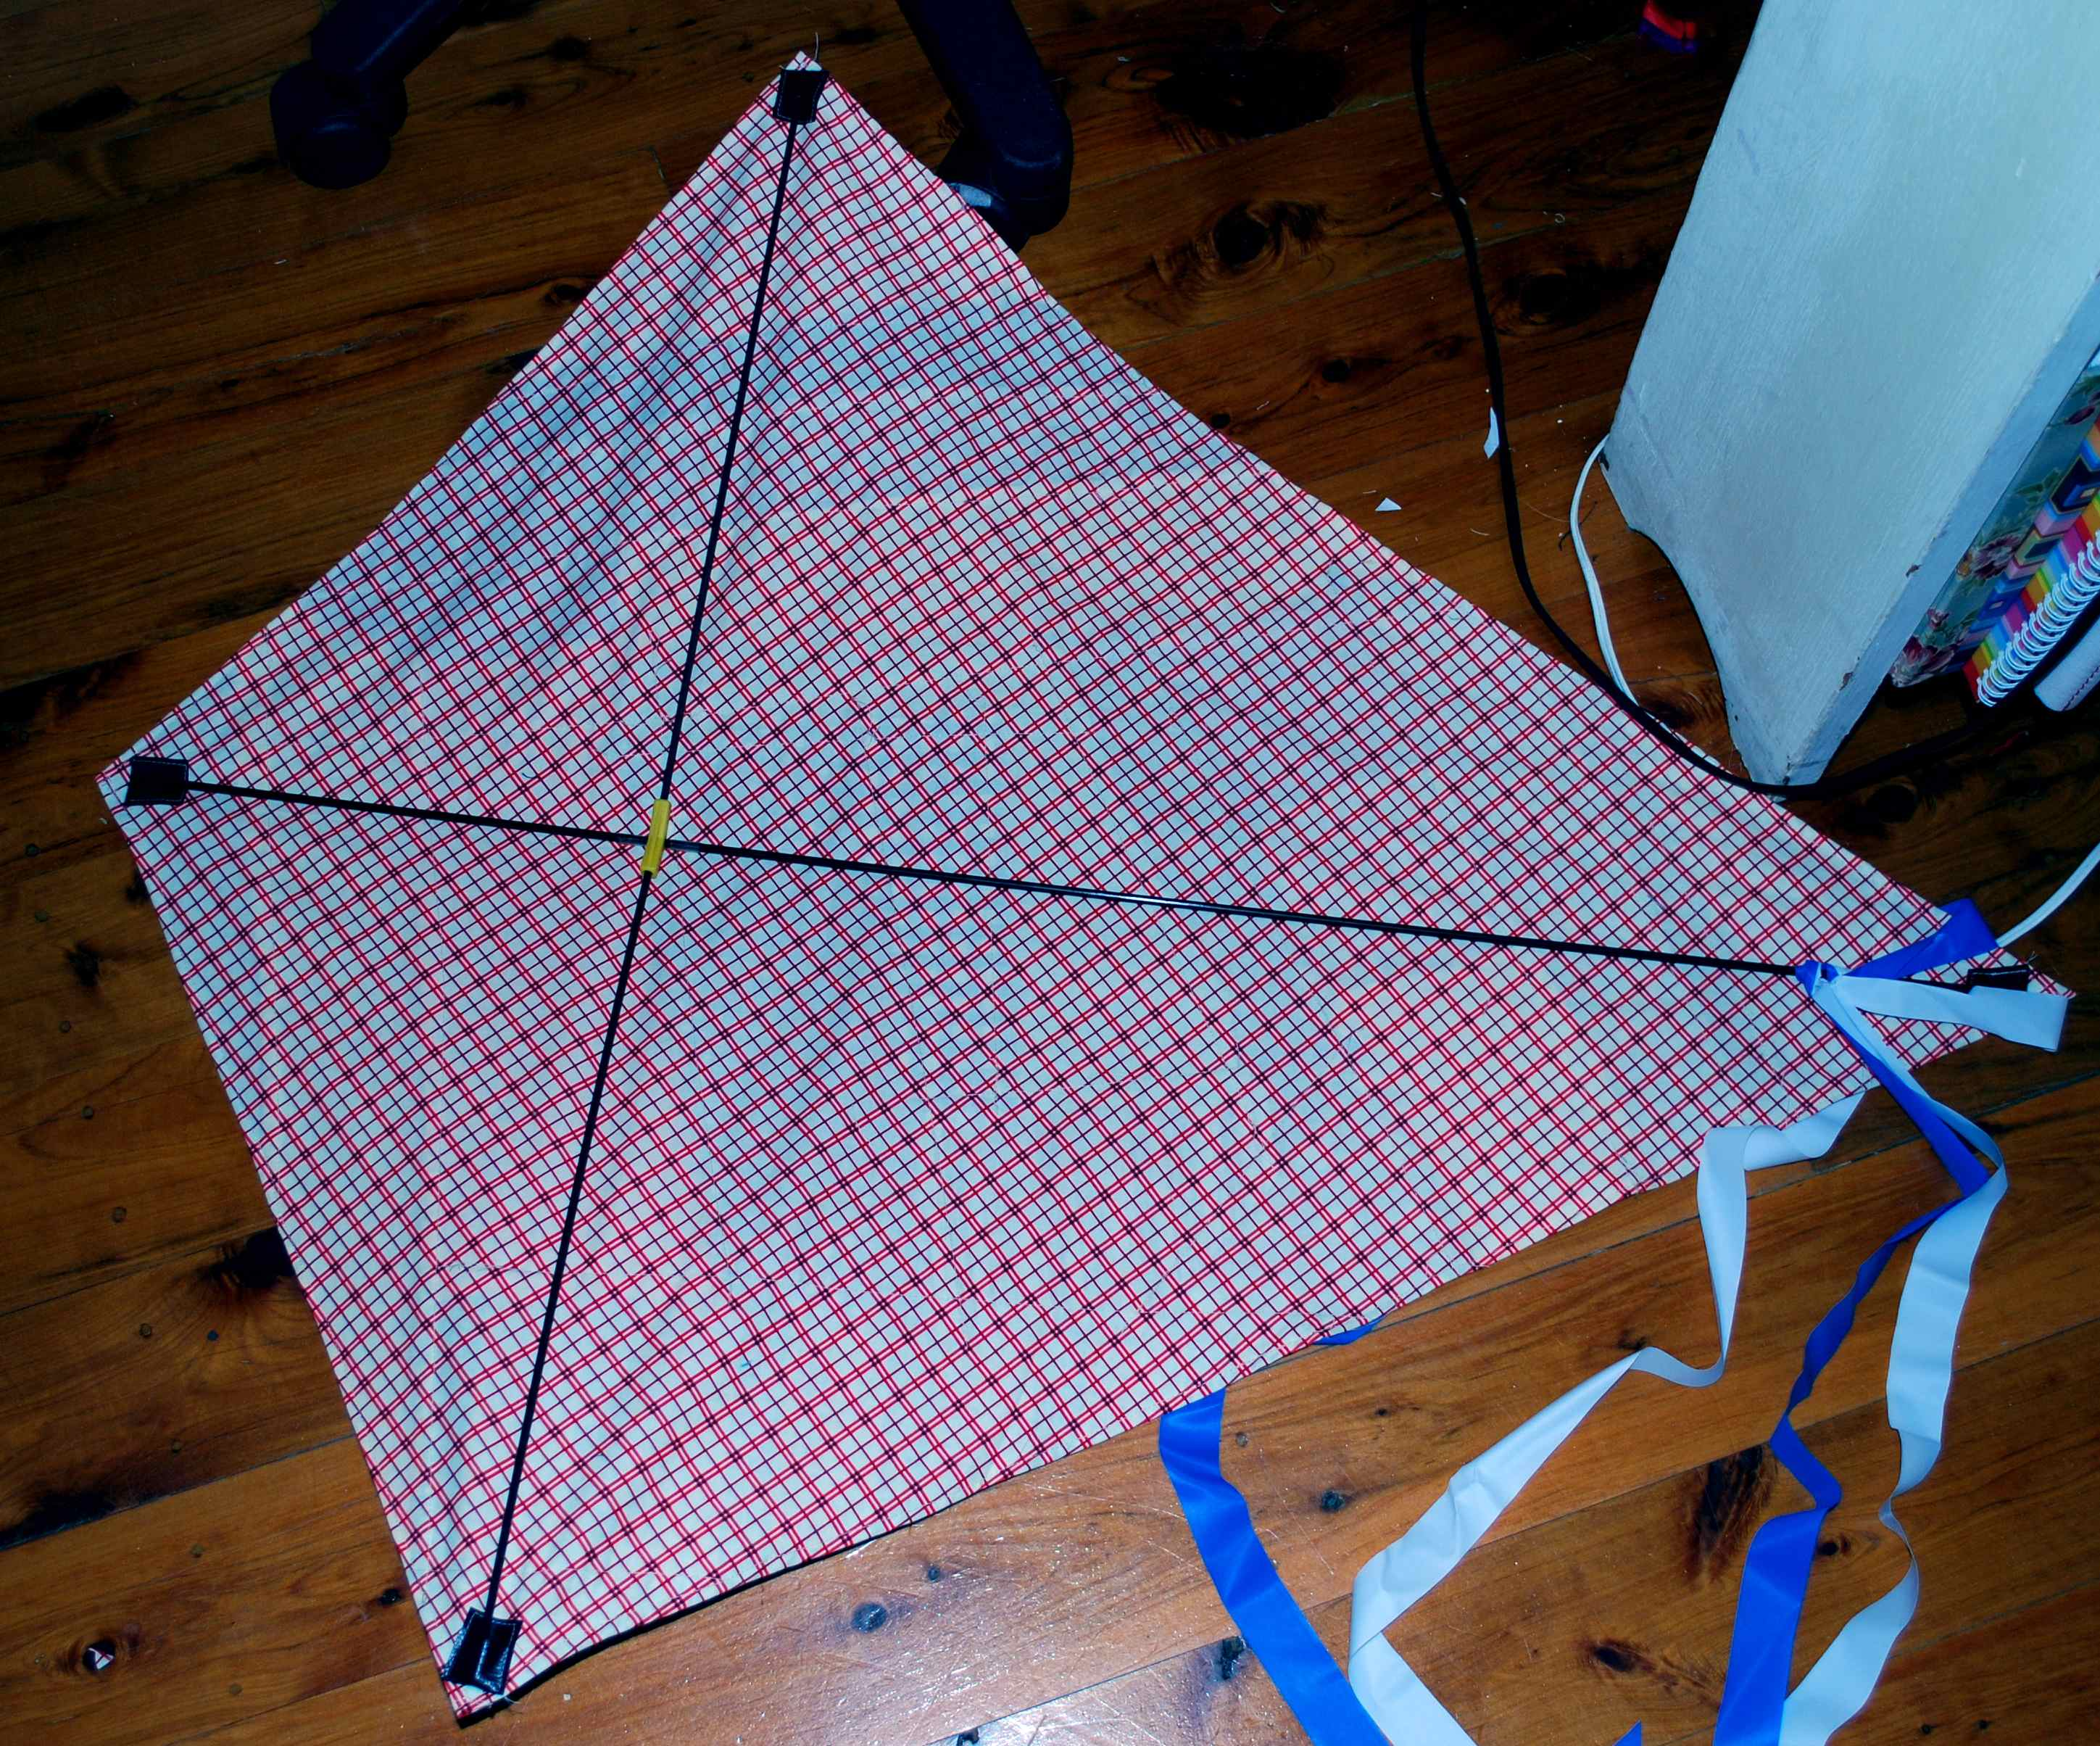 The Last Piece How To Make A Kite